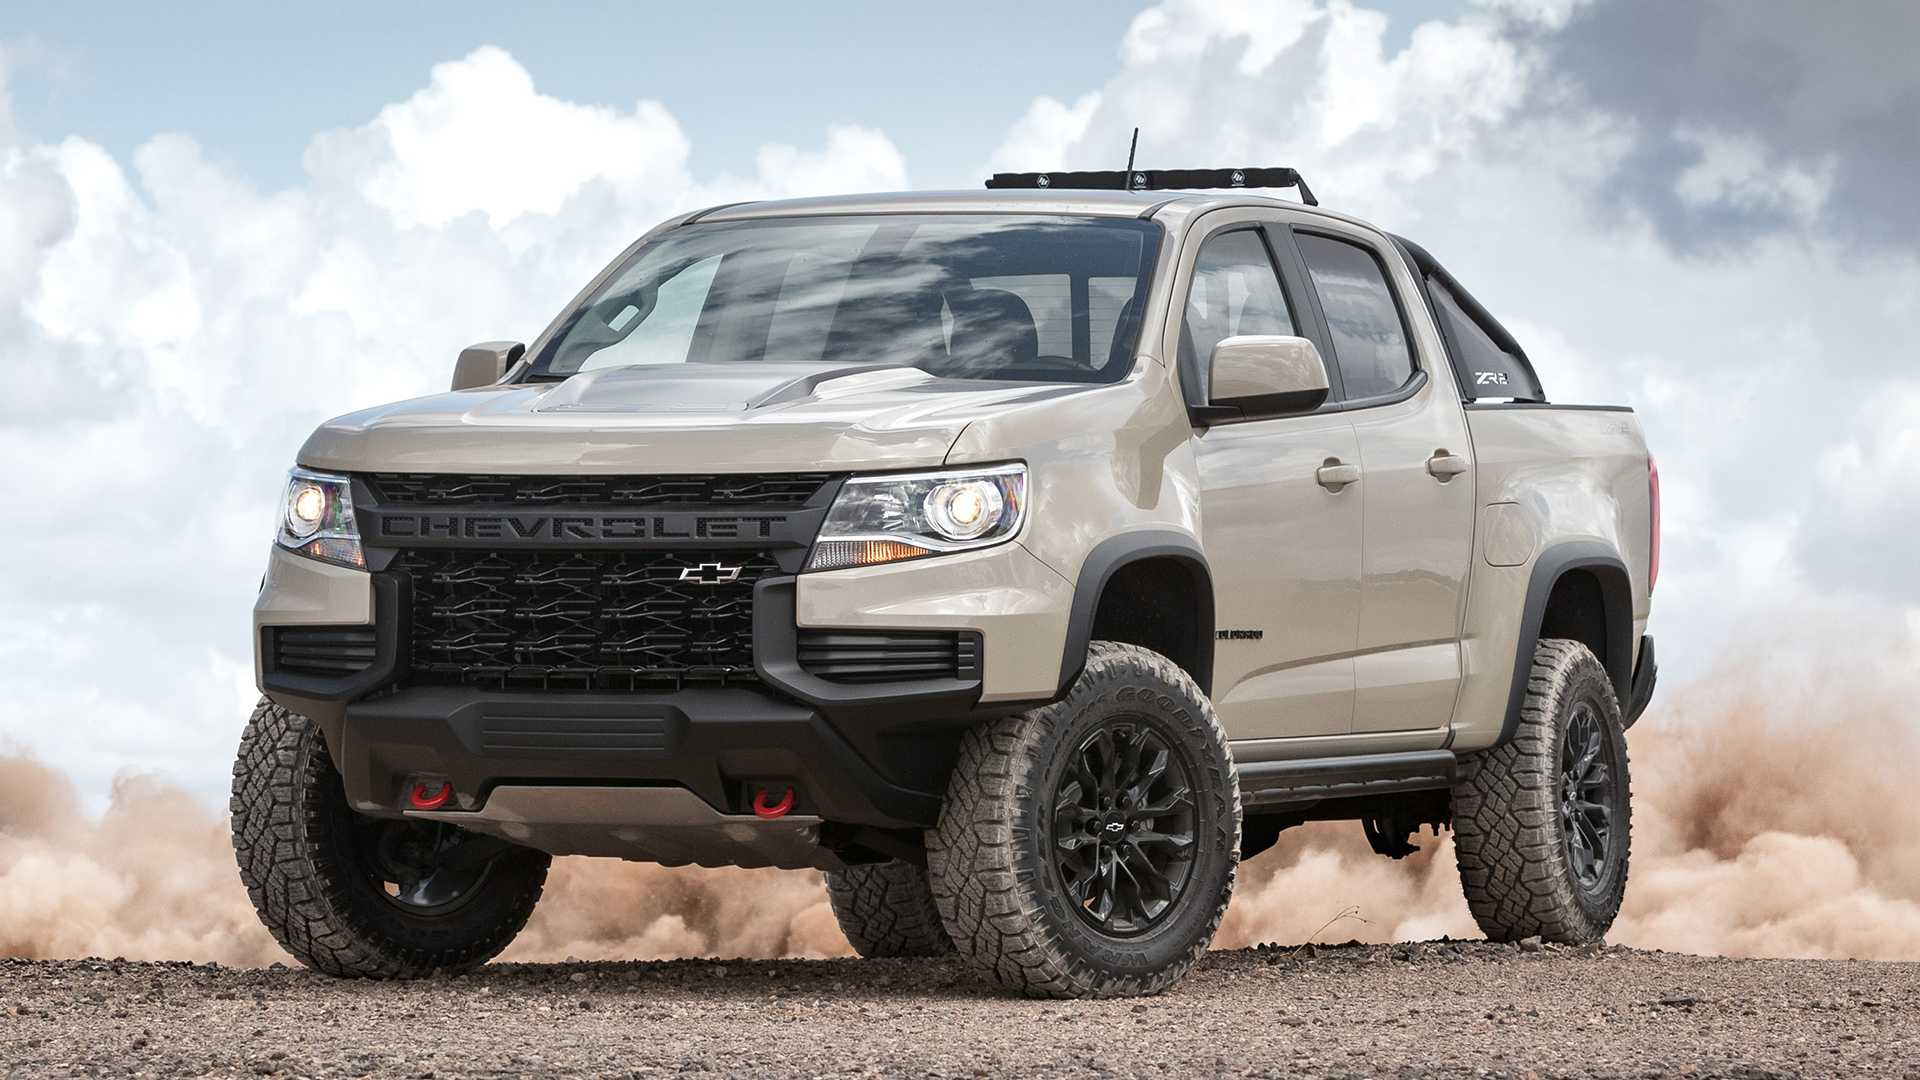 2021 Chevy Colorado Going Launched Soon Images